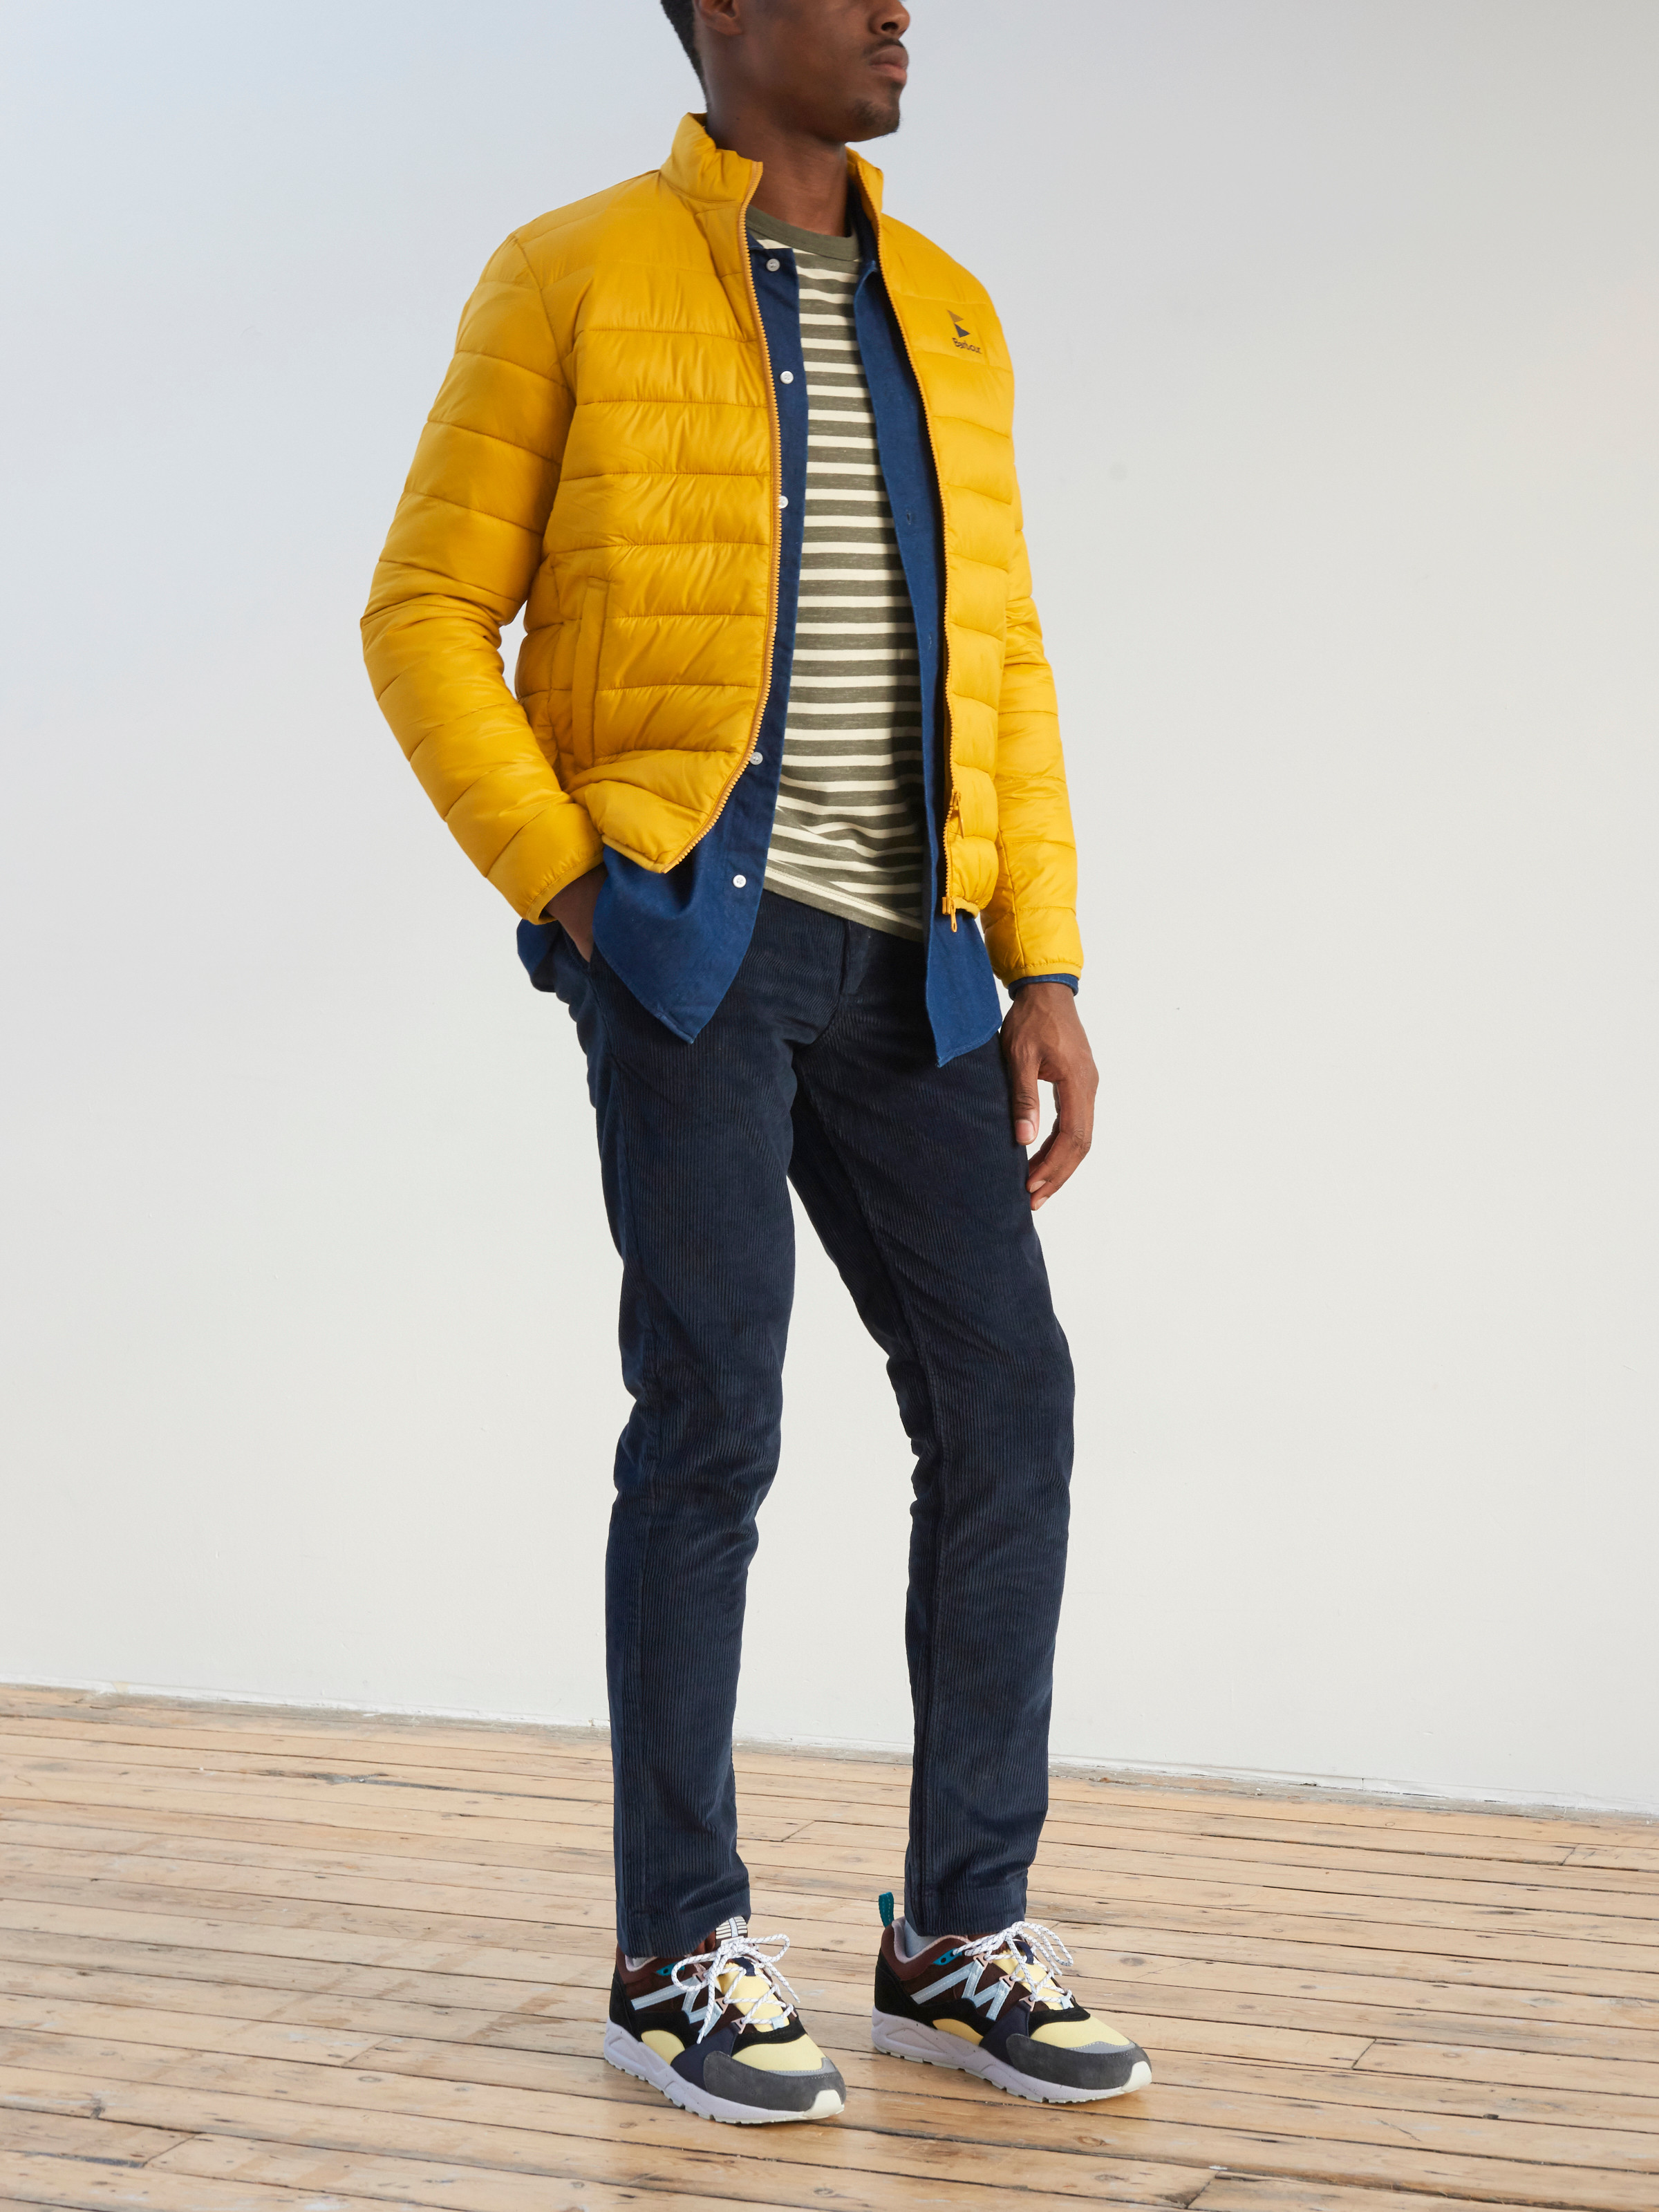 Men's outfit idea for 2021 with yellow quilted jacket, denim shirt, striped crew neck t-shirt, corduroy pants, neutral sneakers. Suitable for spring, fall and winter.